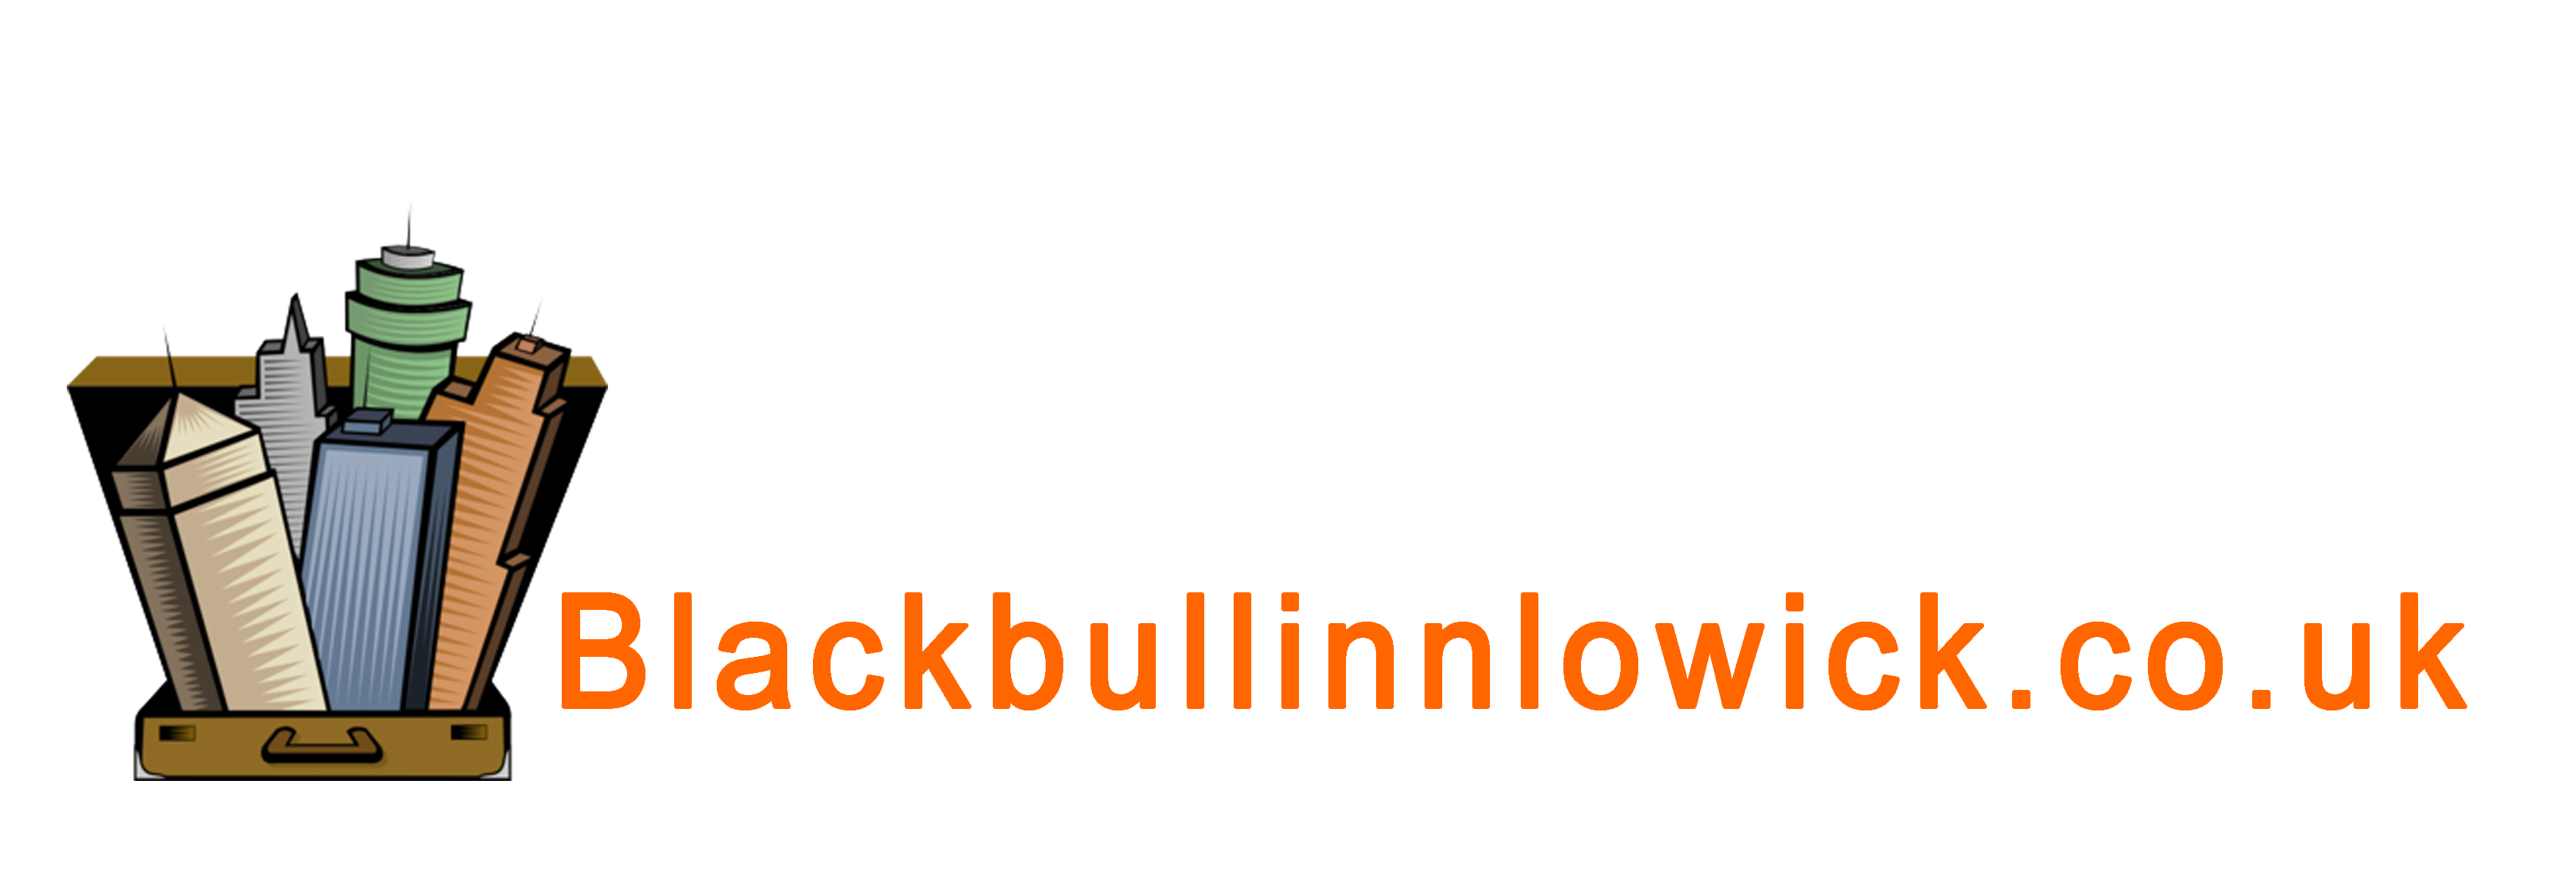 Blackbullinnlowick.co.uk